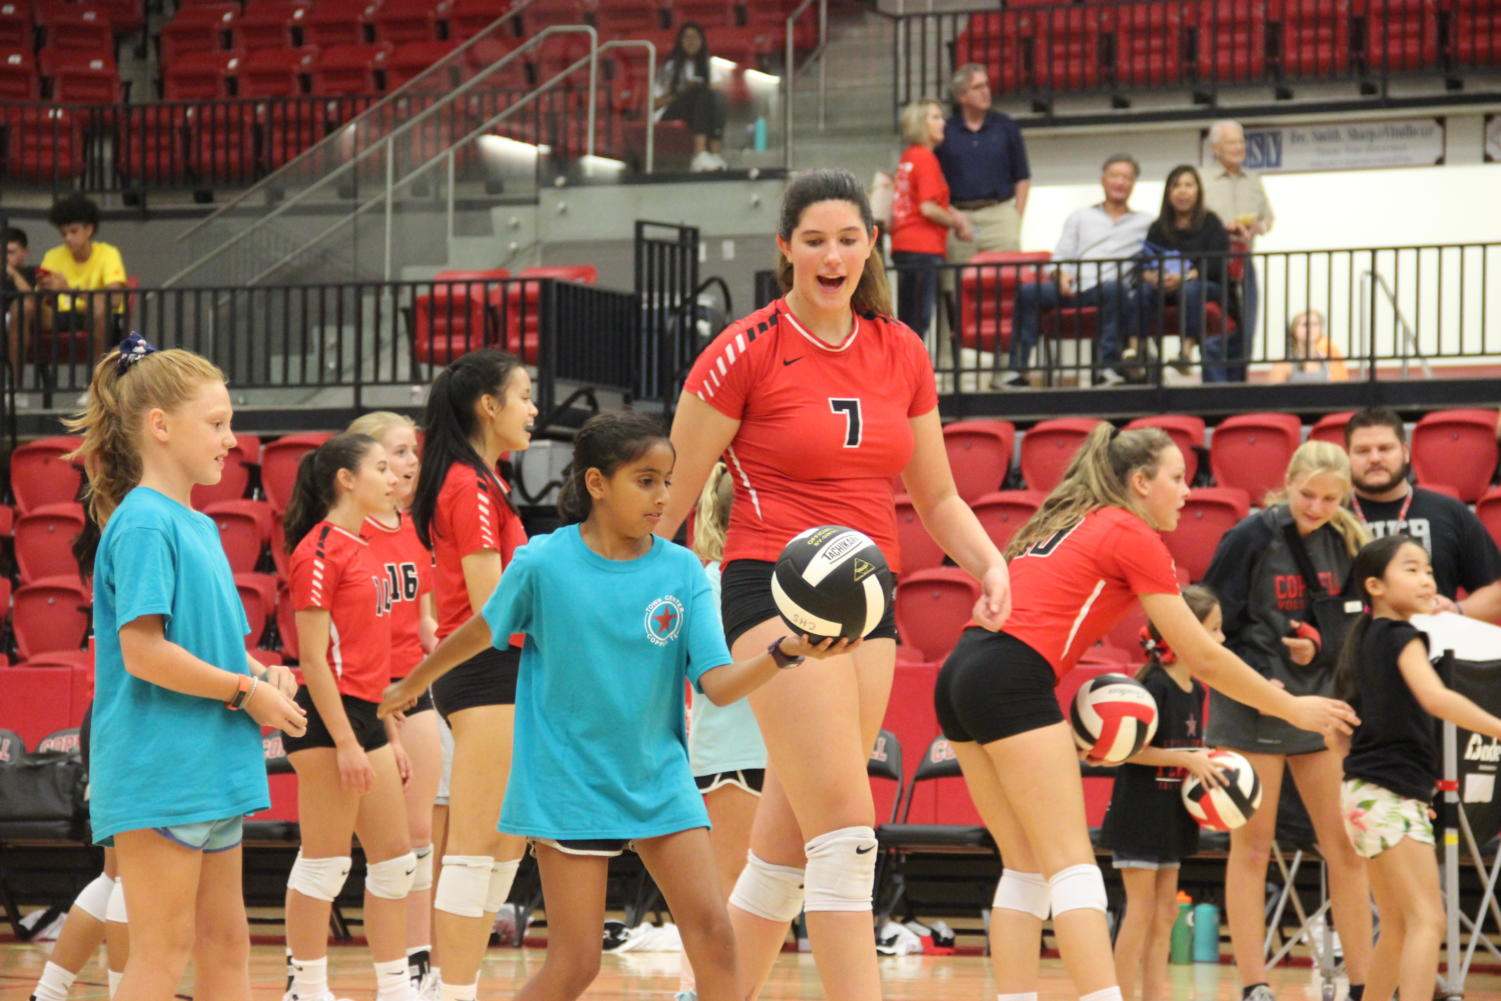 Coppell+JV+sophomore+middle+blocker+Aley+Clent+helps+elementary+school+students+serve+to+win+T-shirts.+The+Coppell+volleyball+team+hosted+Elementary+Night+on+Tuesday+in+the+CHS+Arena+before+the+varsity+match+against+Arlington+Martin.